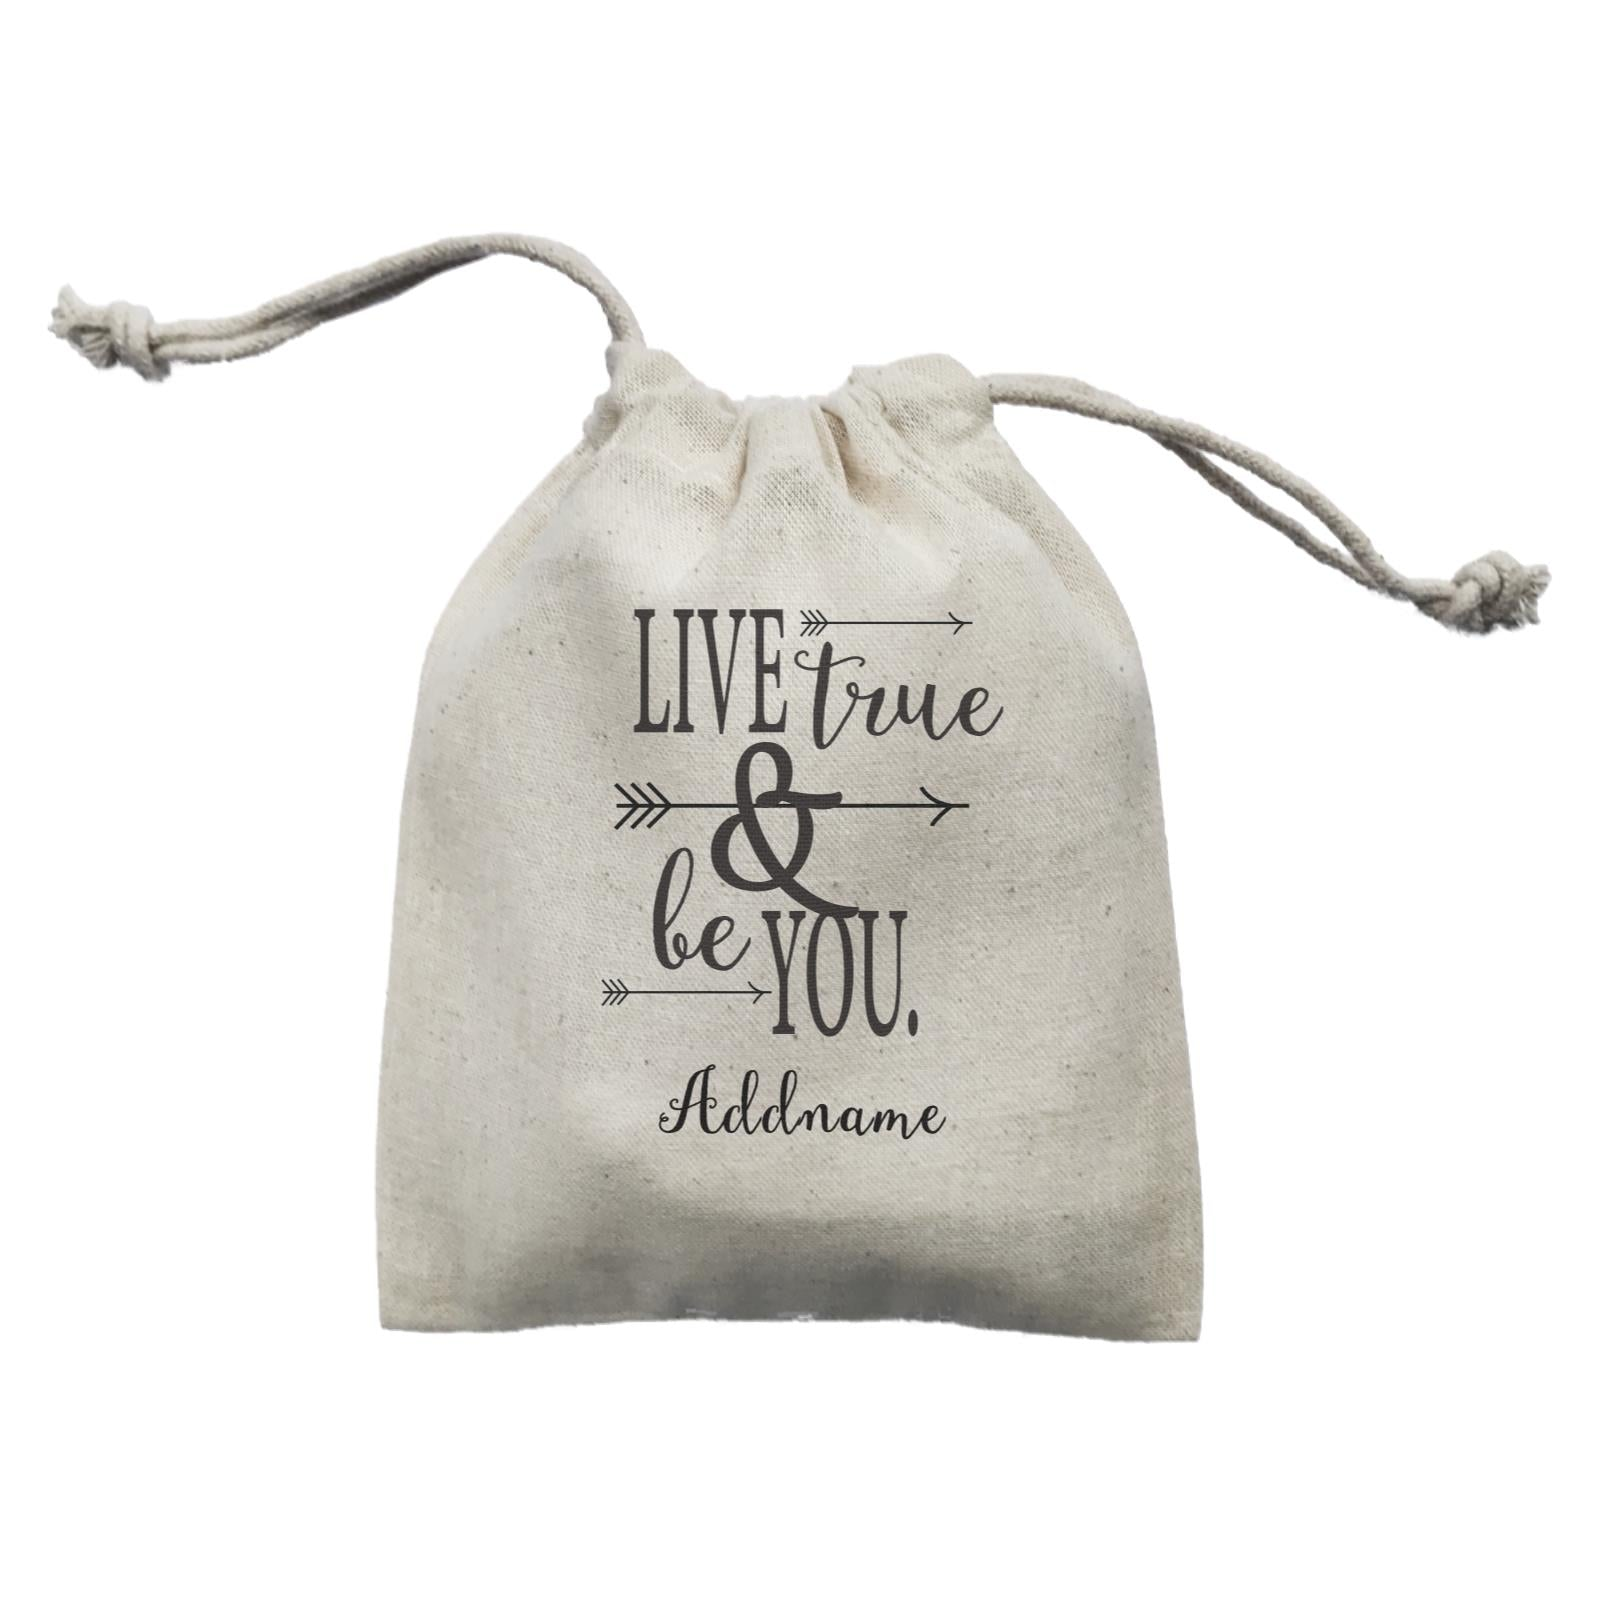 Inspiration Quotes Live True And Be You Addname Mini Accessories Mini Pouch